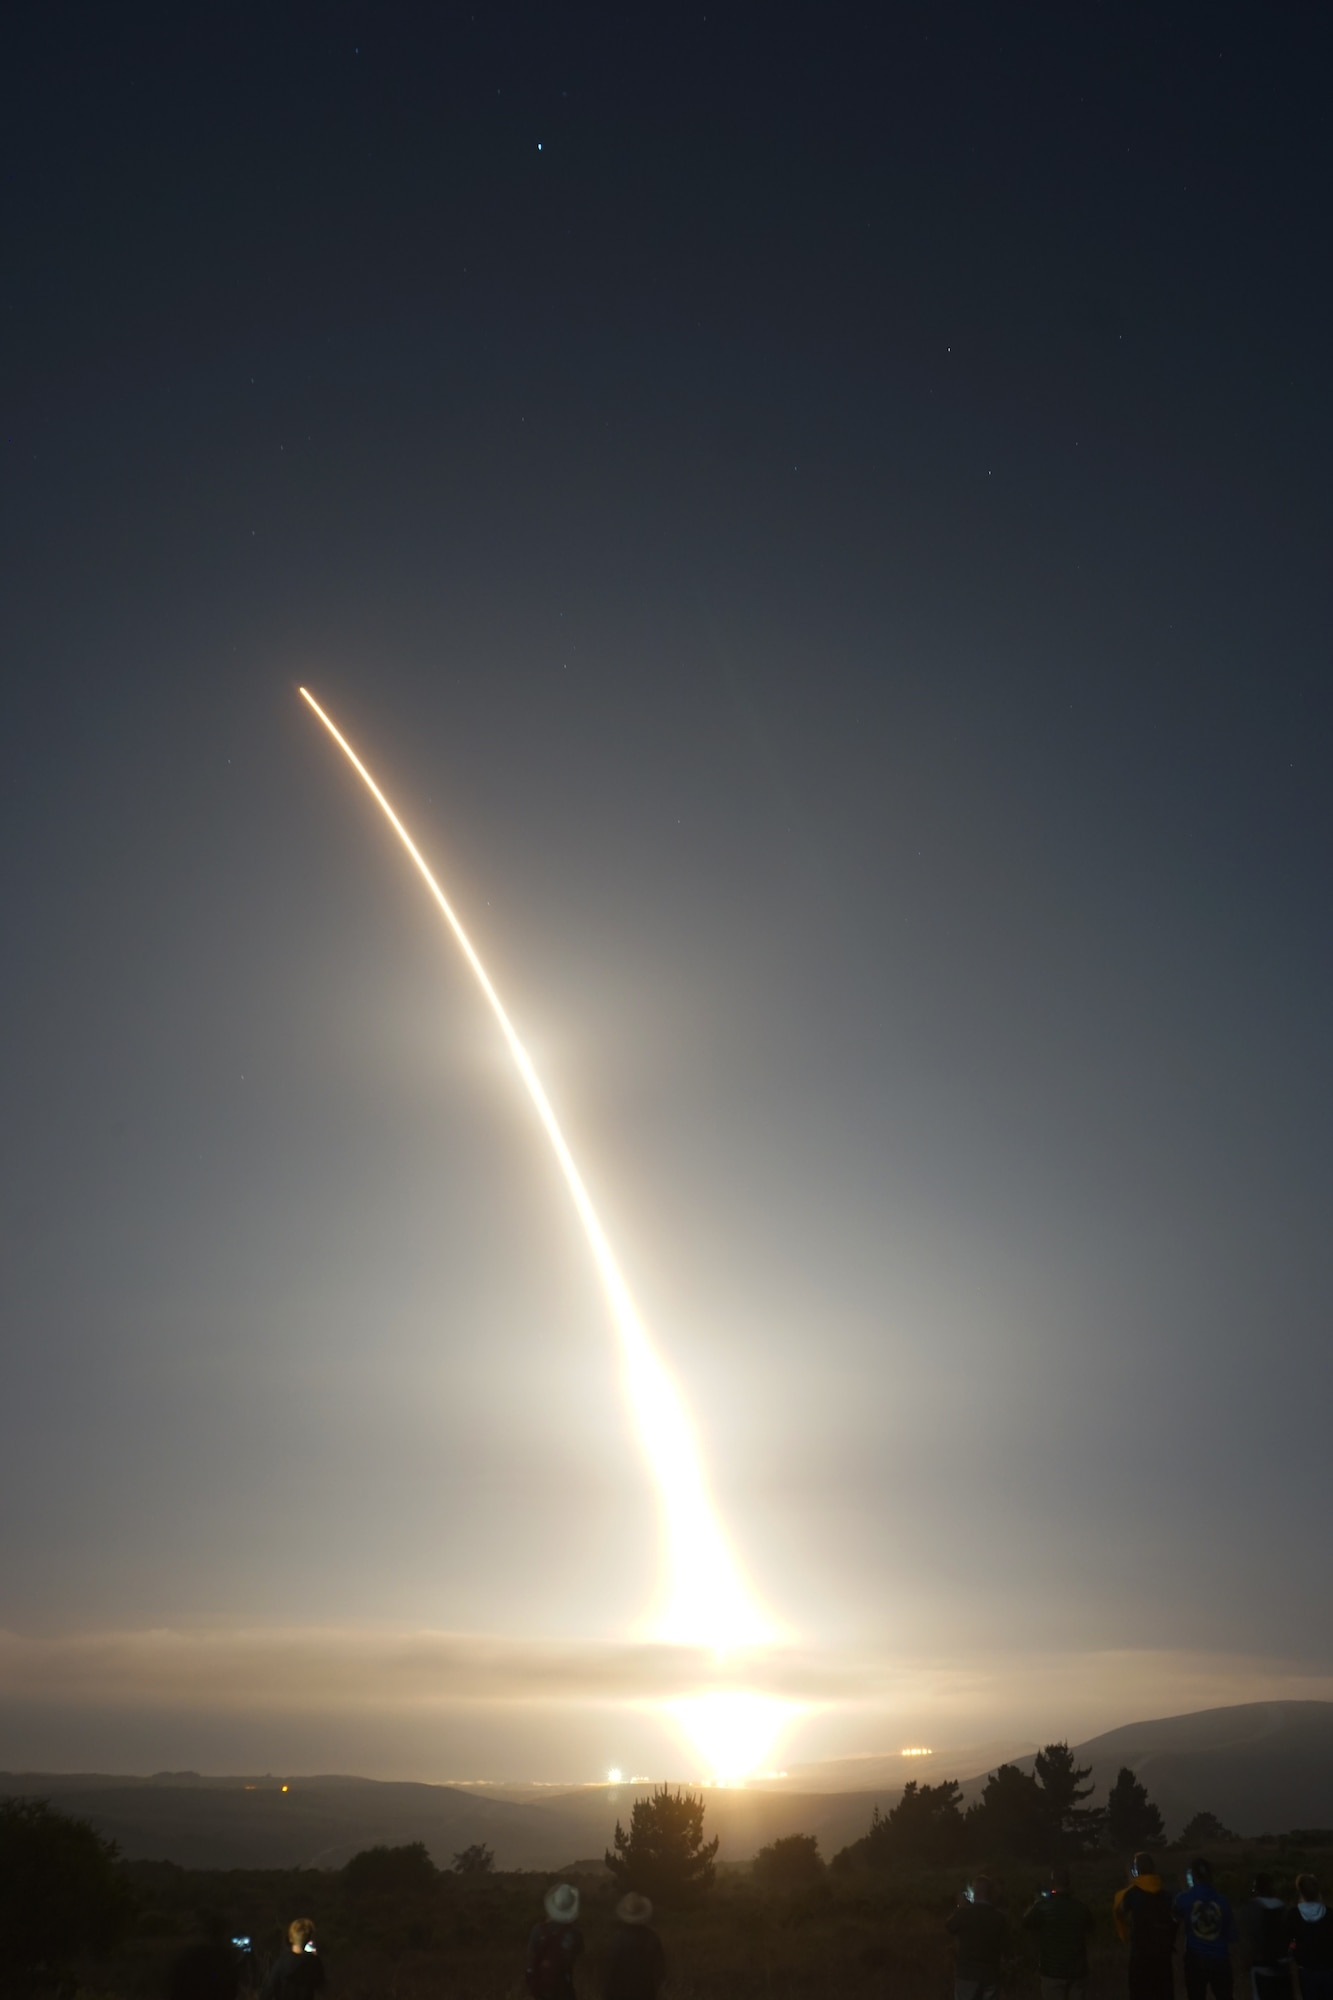 An Air Force Global Strike Command unarmed Minuteman III intercontinental ballistic missile launches during an operational test at 12:03 Pacific Daylight Time (Wednesday, September, 2020), at Vandenberg Air Force Base, California. ICBM test launches demonstrate the U.S. nuclear enterprise is safe, secure, effective and ready to defend the United States and its allies. ICBMs provide the U.S. and its allies the necessary deterrent capability to maintain freedom to operate and navigate globally in accordance with international laws and norms. (Courtesy photo by Connor Riley)